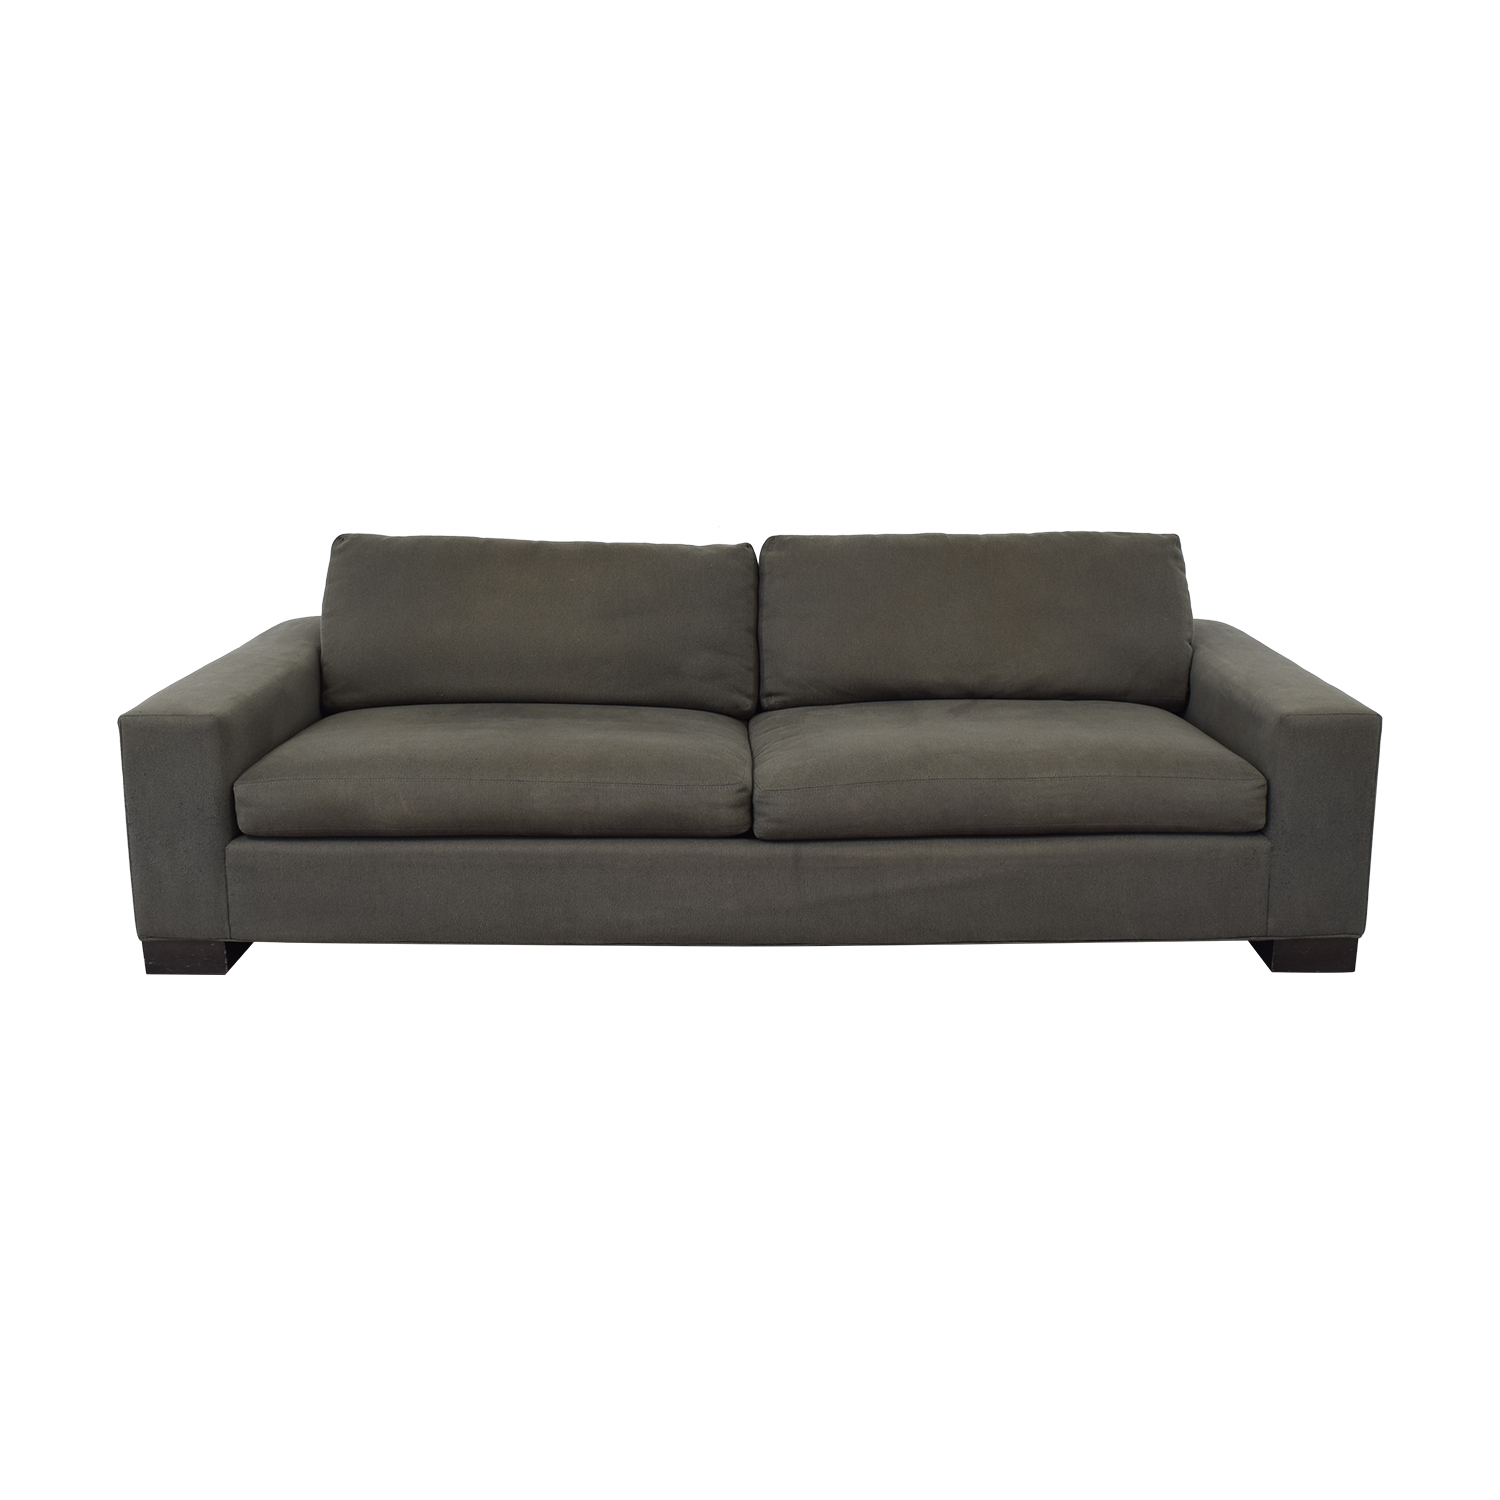 Crate & Barrel Crate & Barrel Grey Sofa on sale